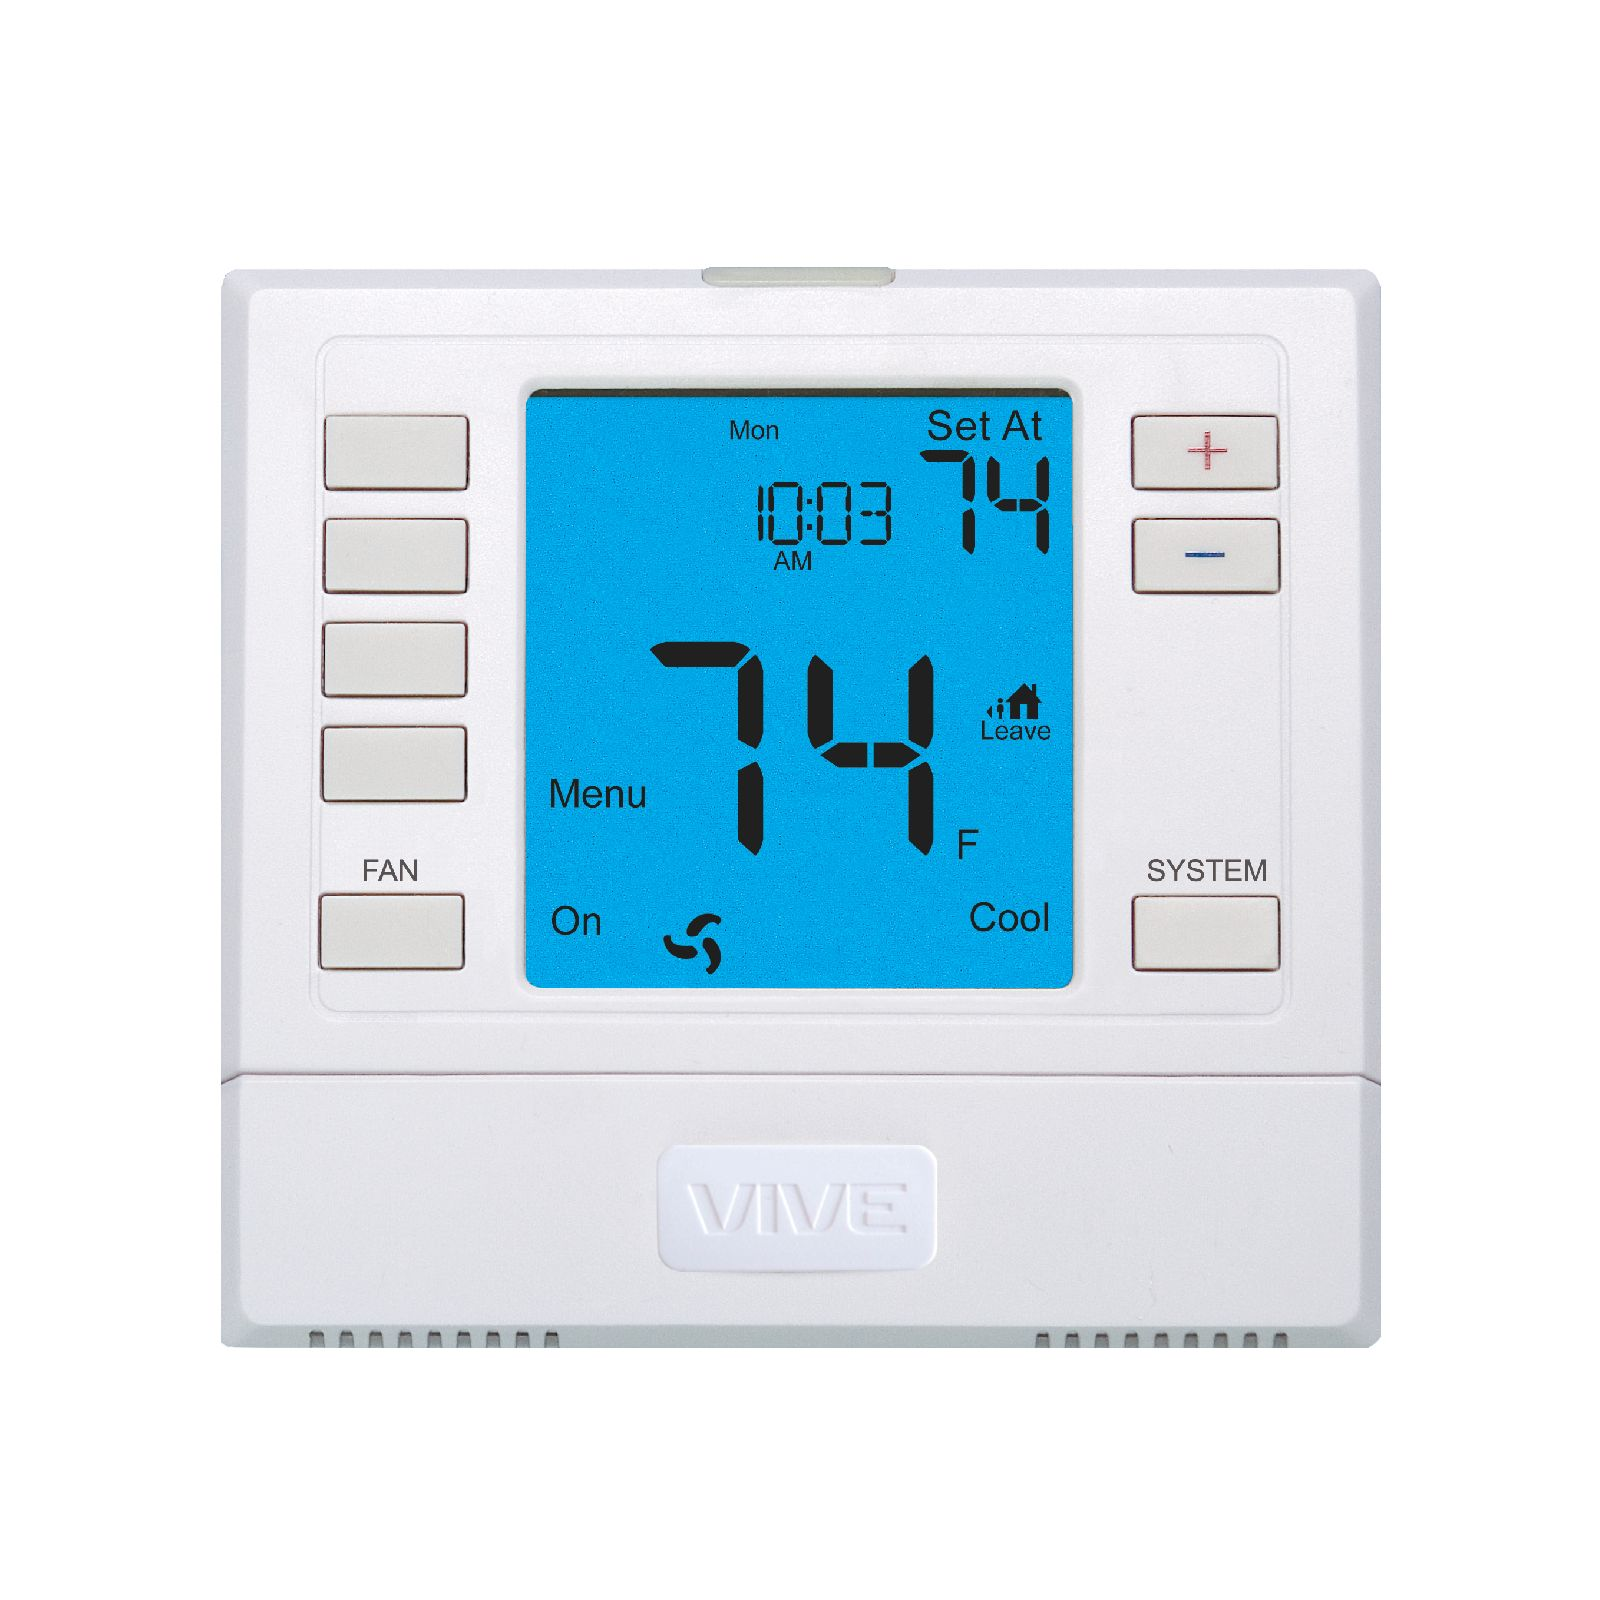 VIVE TP-S-755R - 5+1+1 Or Non-Programmable Remote Sensor Capable Thermostat, 3H/2C, Universal With 6 Sq. In. Display